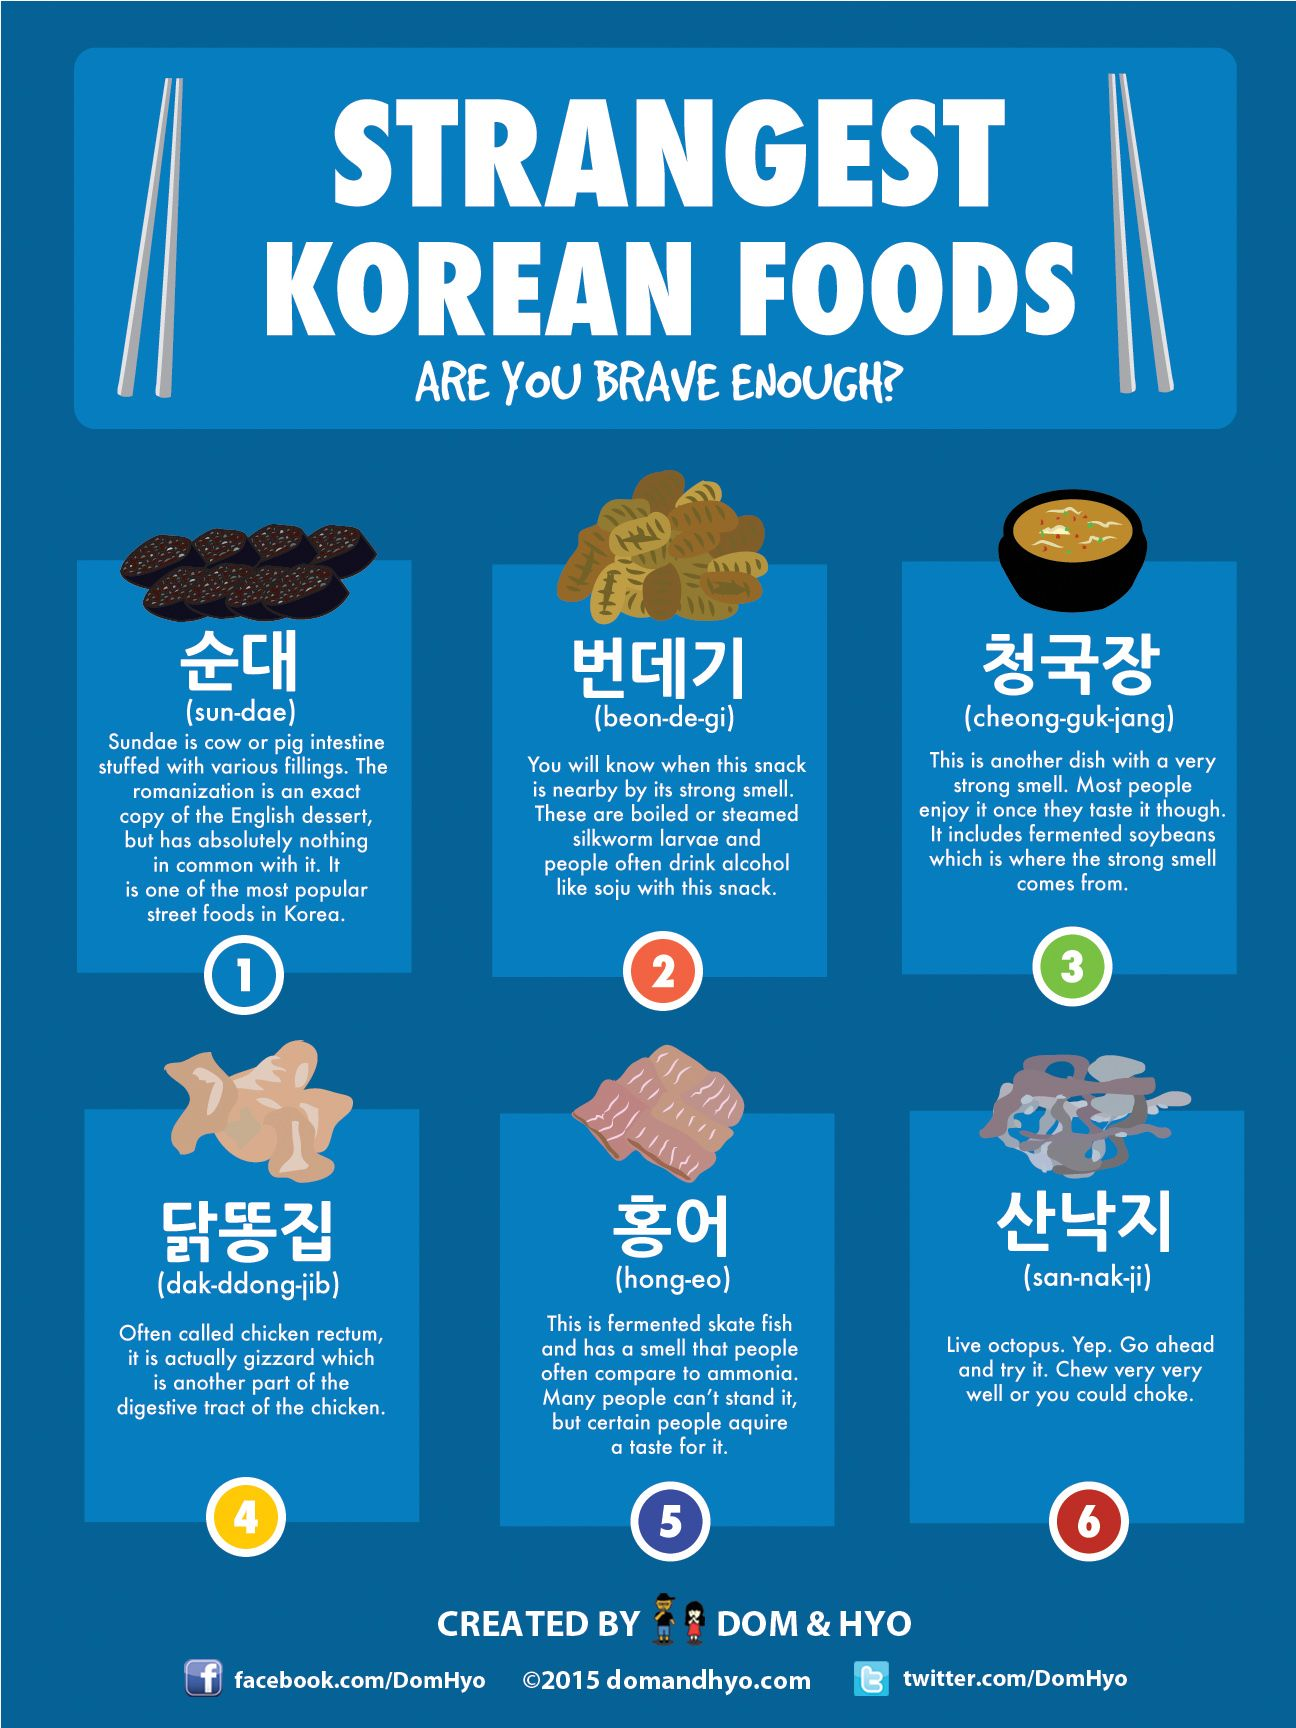 Korean Food 6 Strange Foods To Eat In Korea With Images